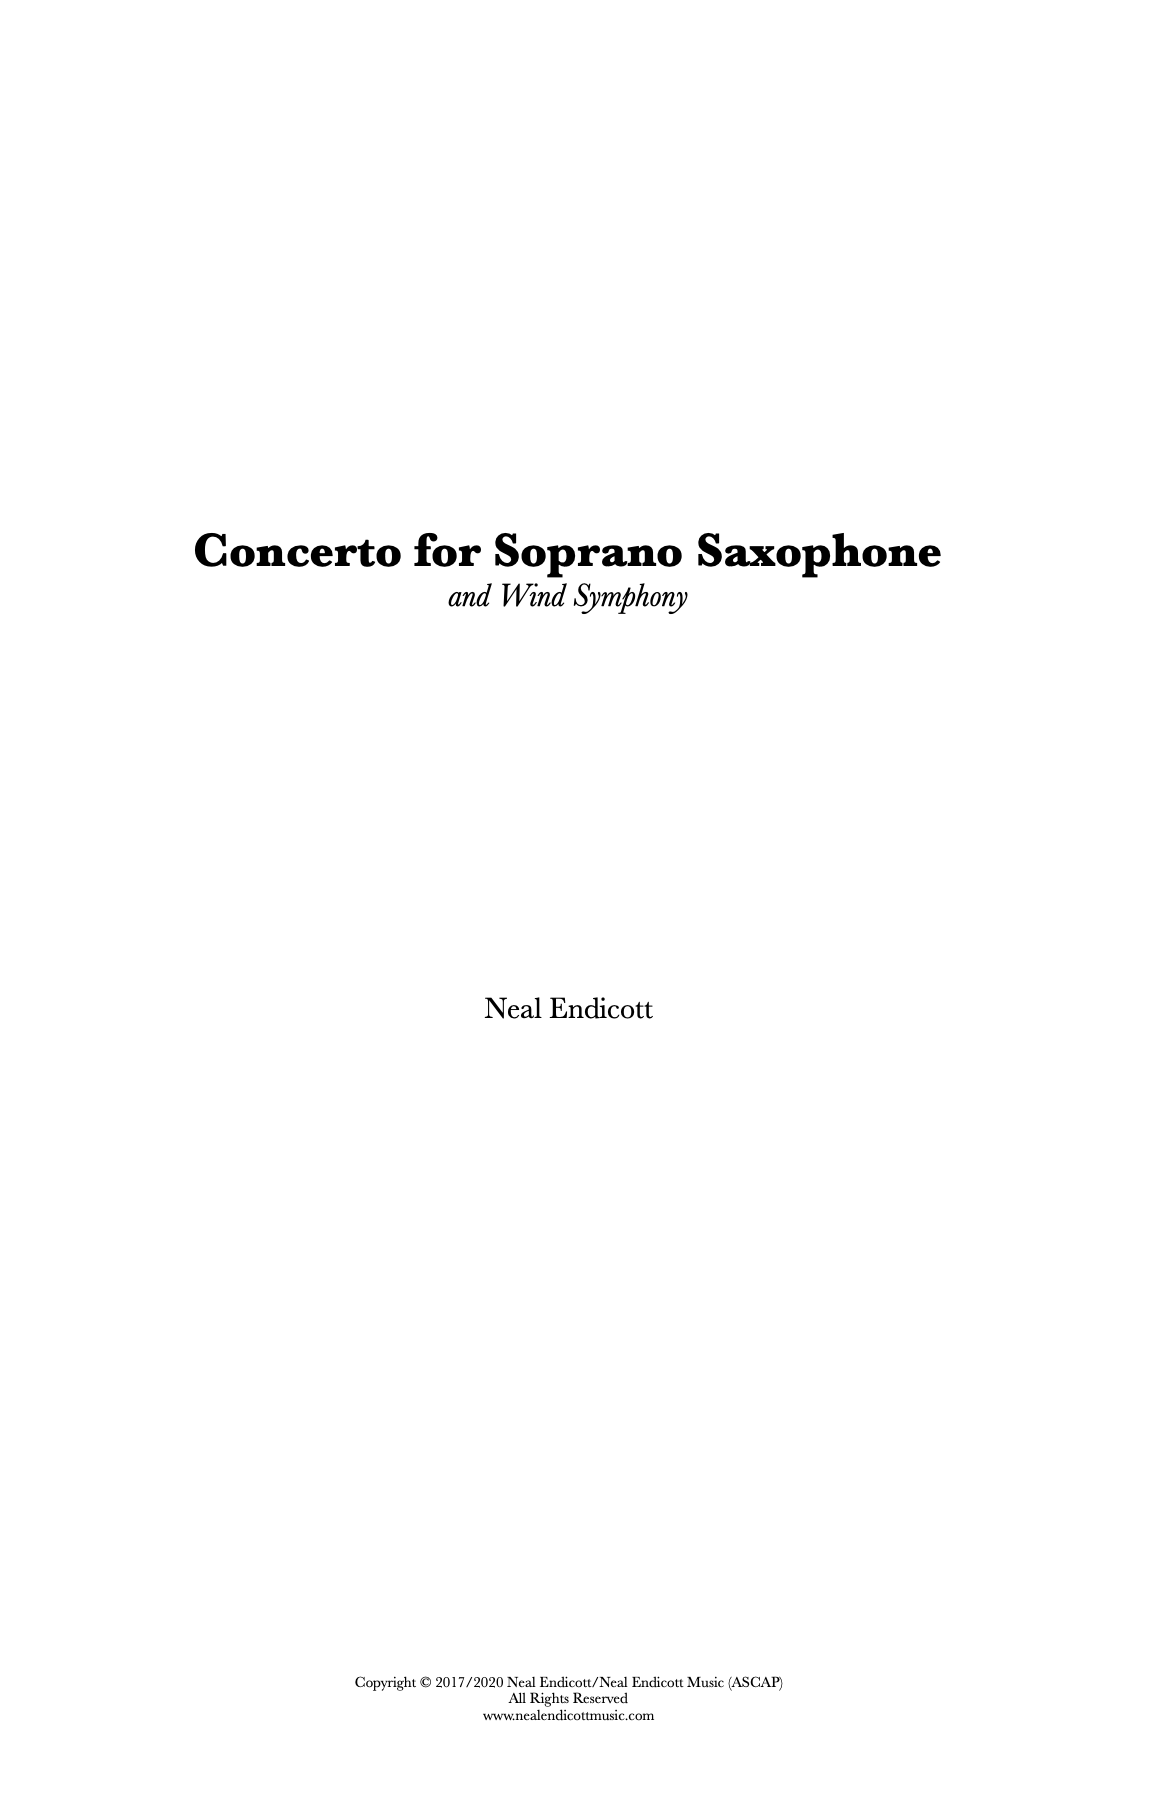 Concerto For Soprano Saxophone And Wind Symphony by Neal Endicott